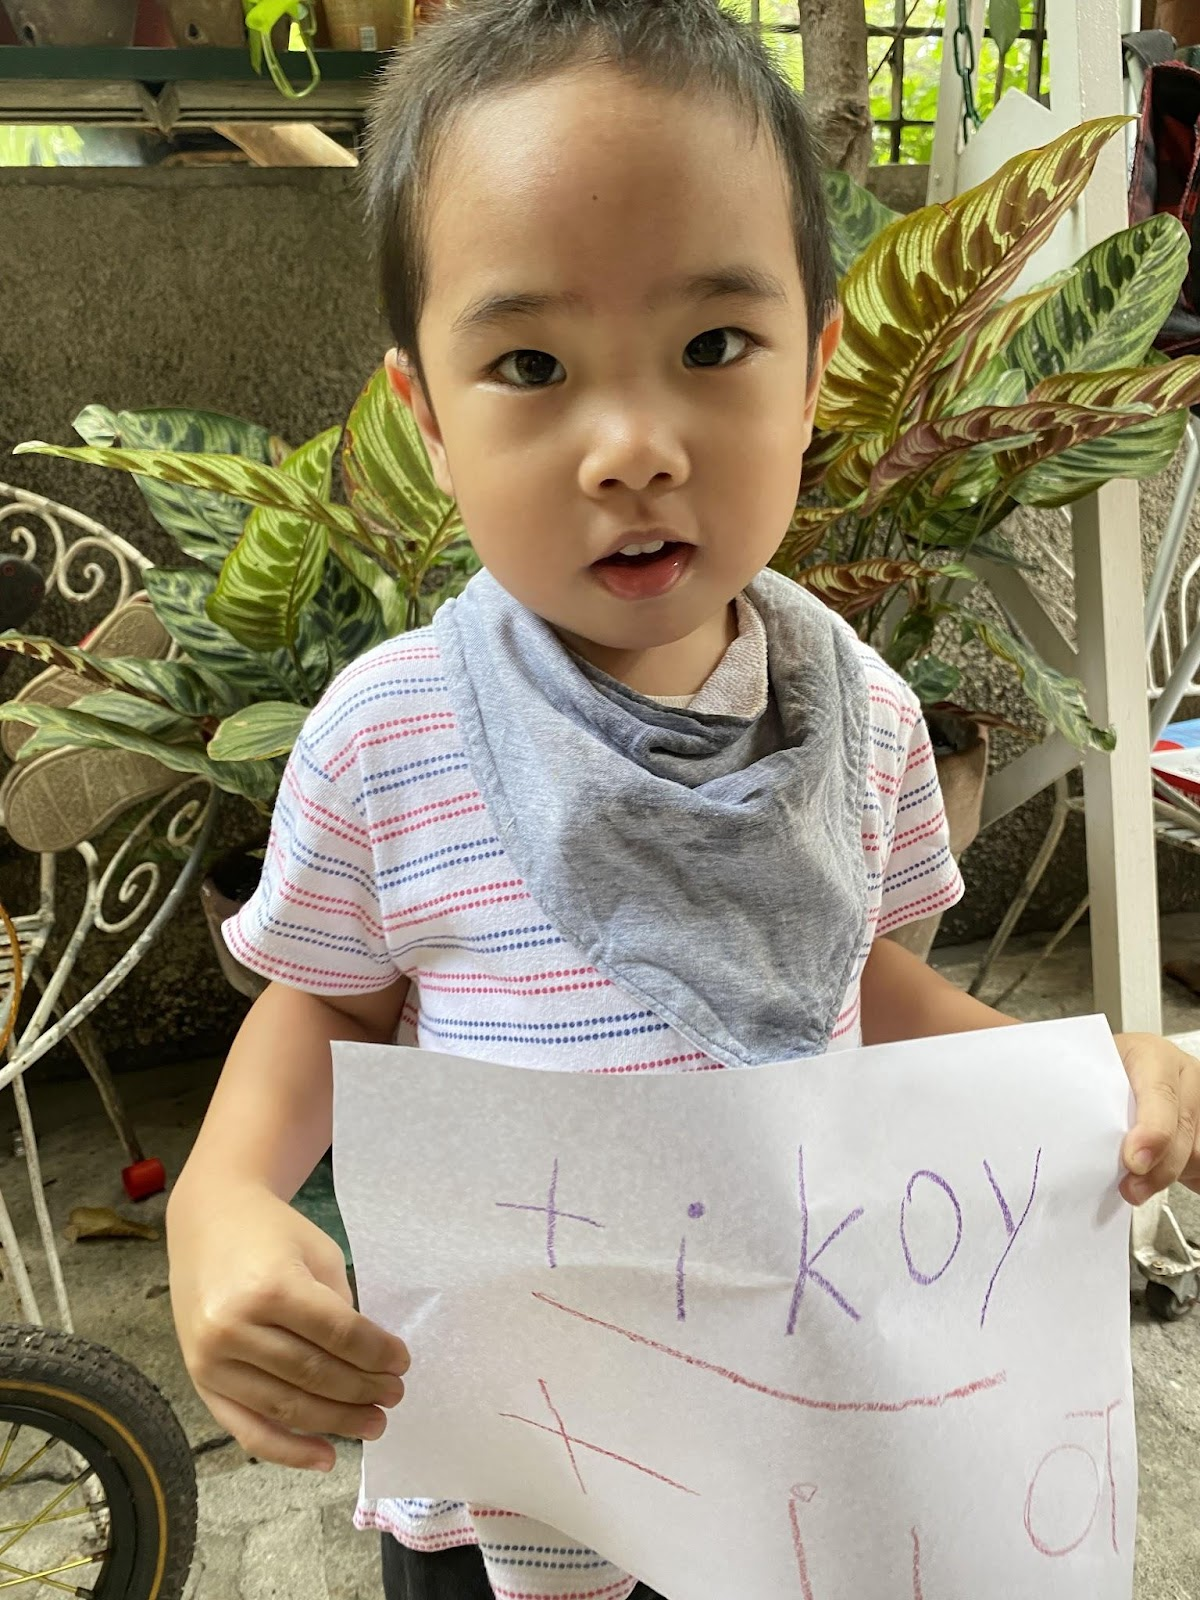 Toddler practices writing his name.